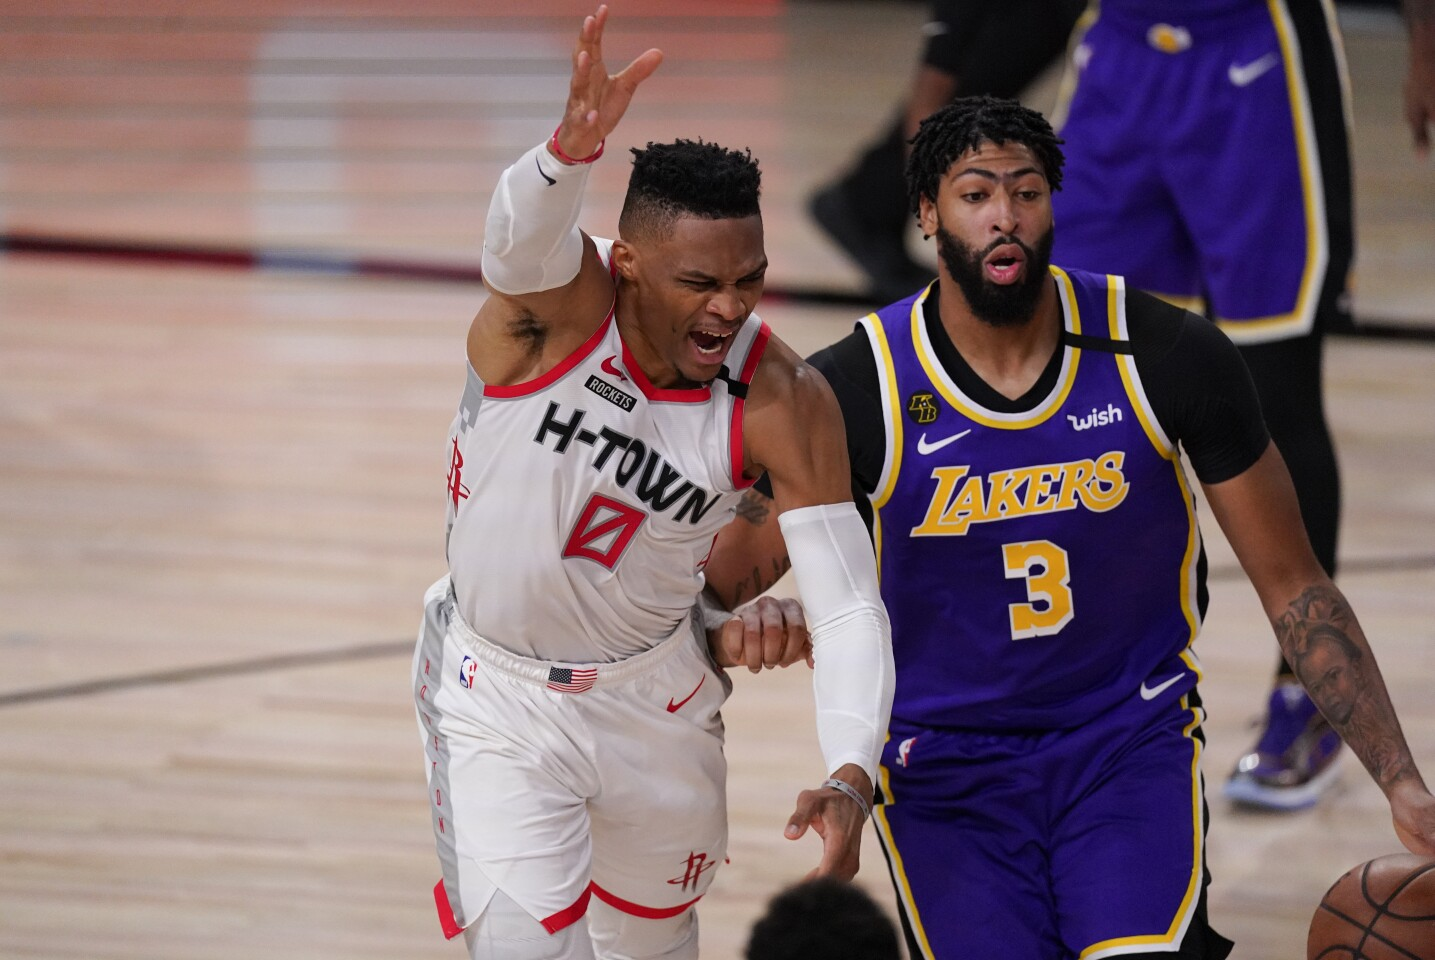 The Rockets' Russell Westbrook, left, loses the ball while being defended by the Lakers' Anthony Davis on Friday.